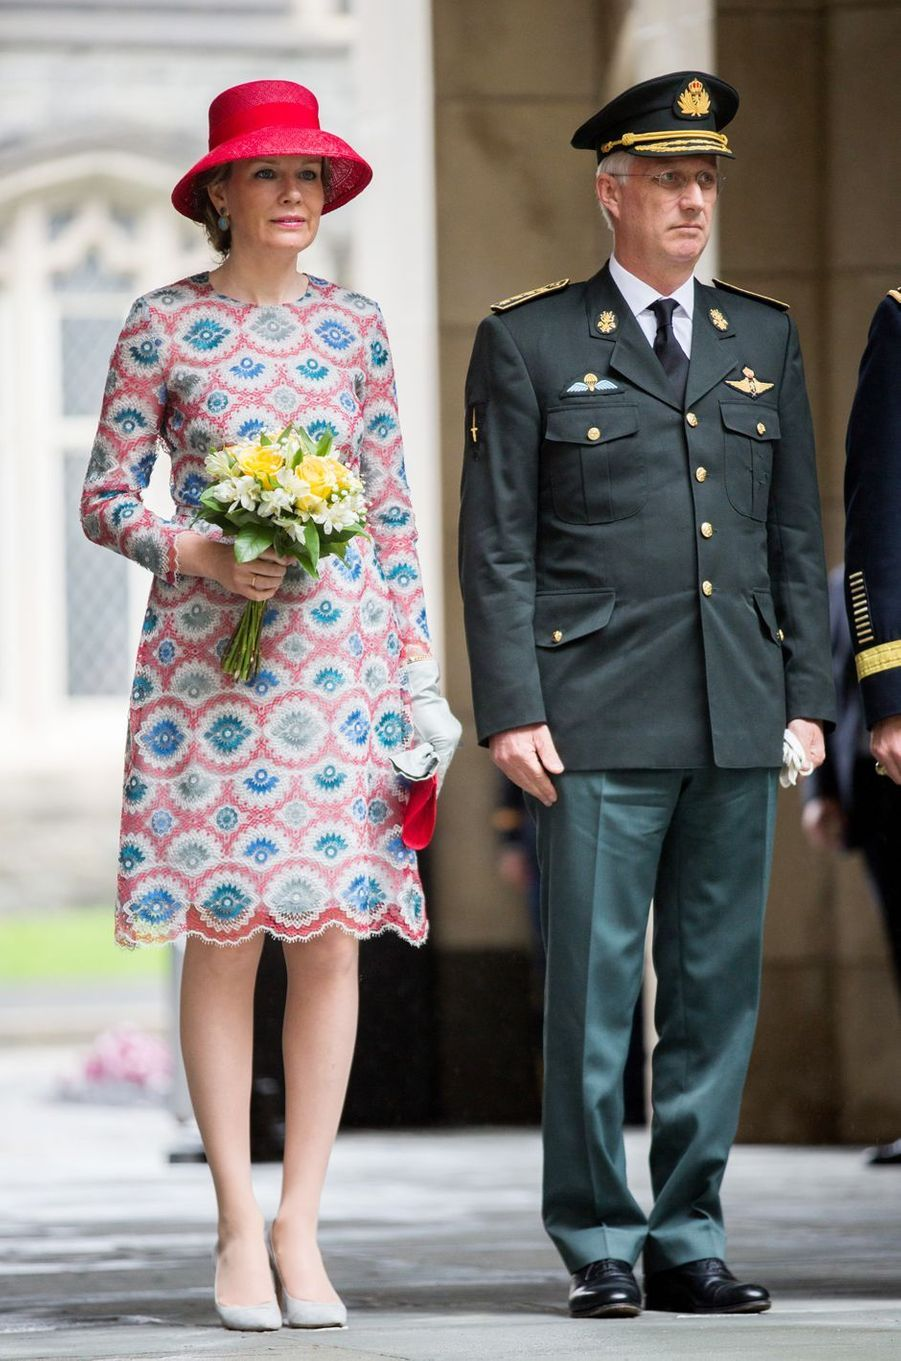 La reine Mathilde de Belgique dans une robe Natan à West Point, le 25 avril 2018